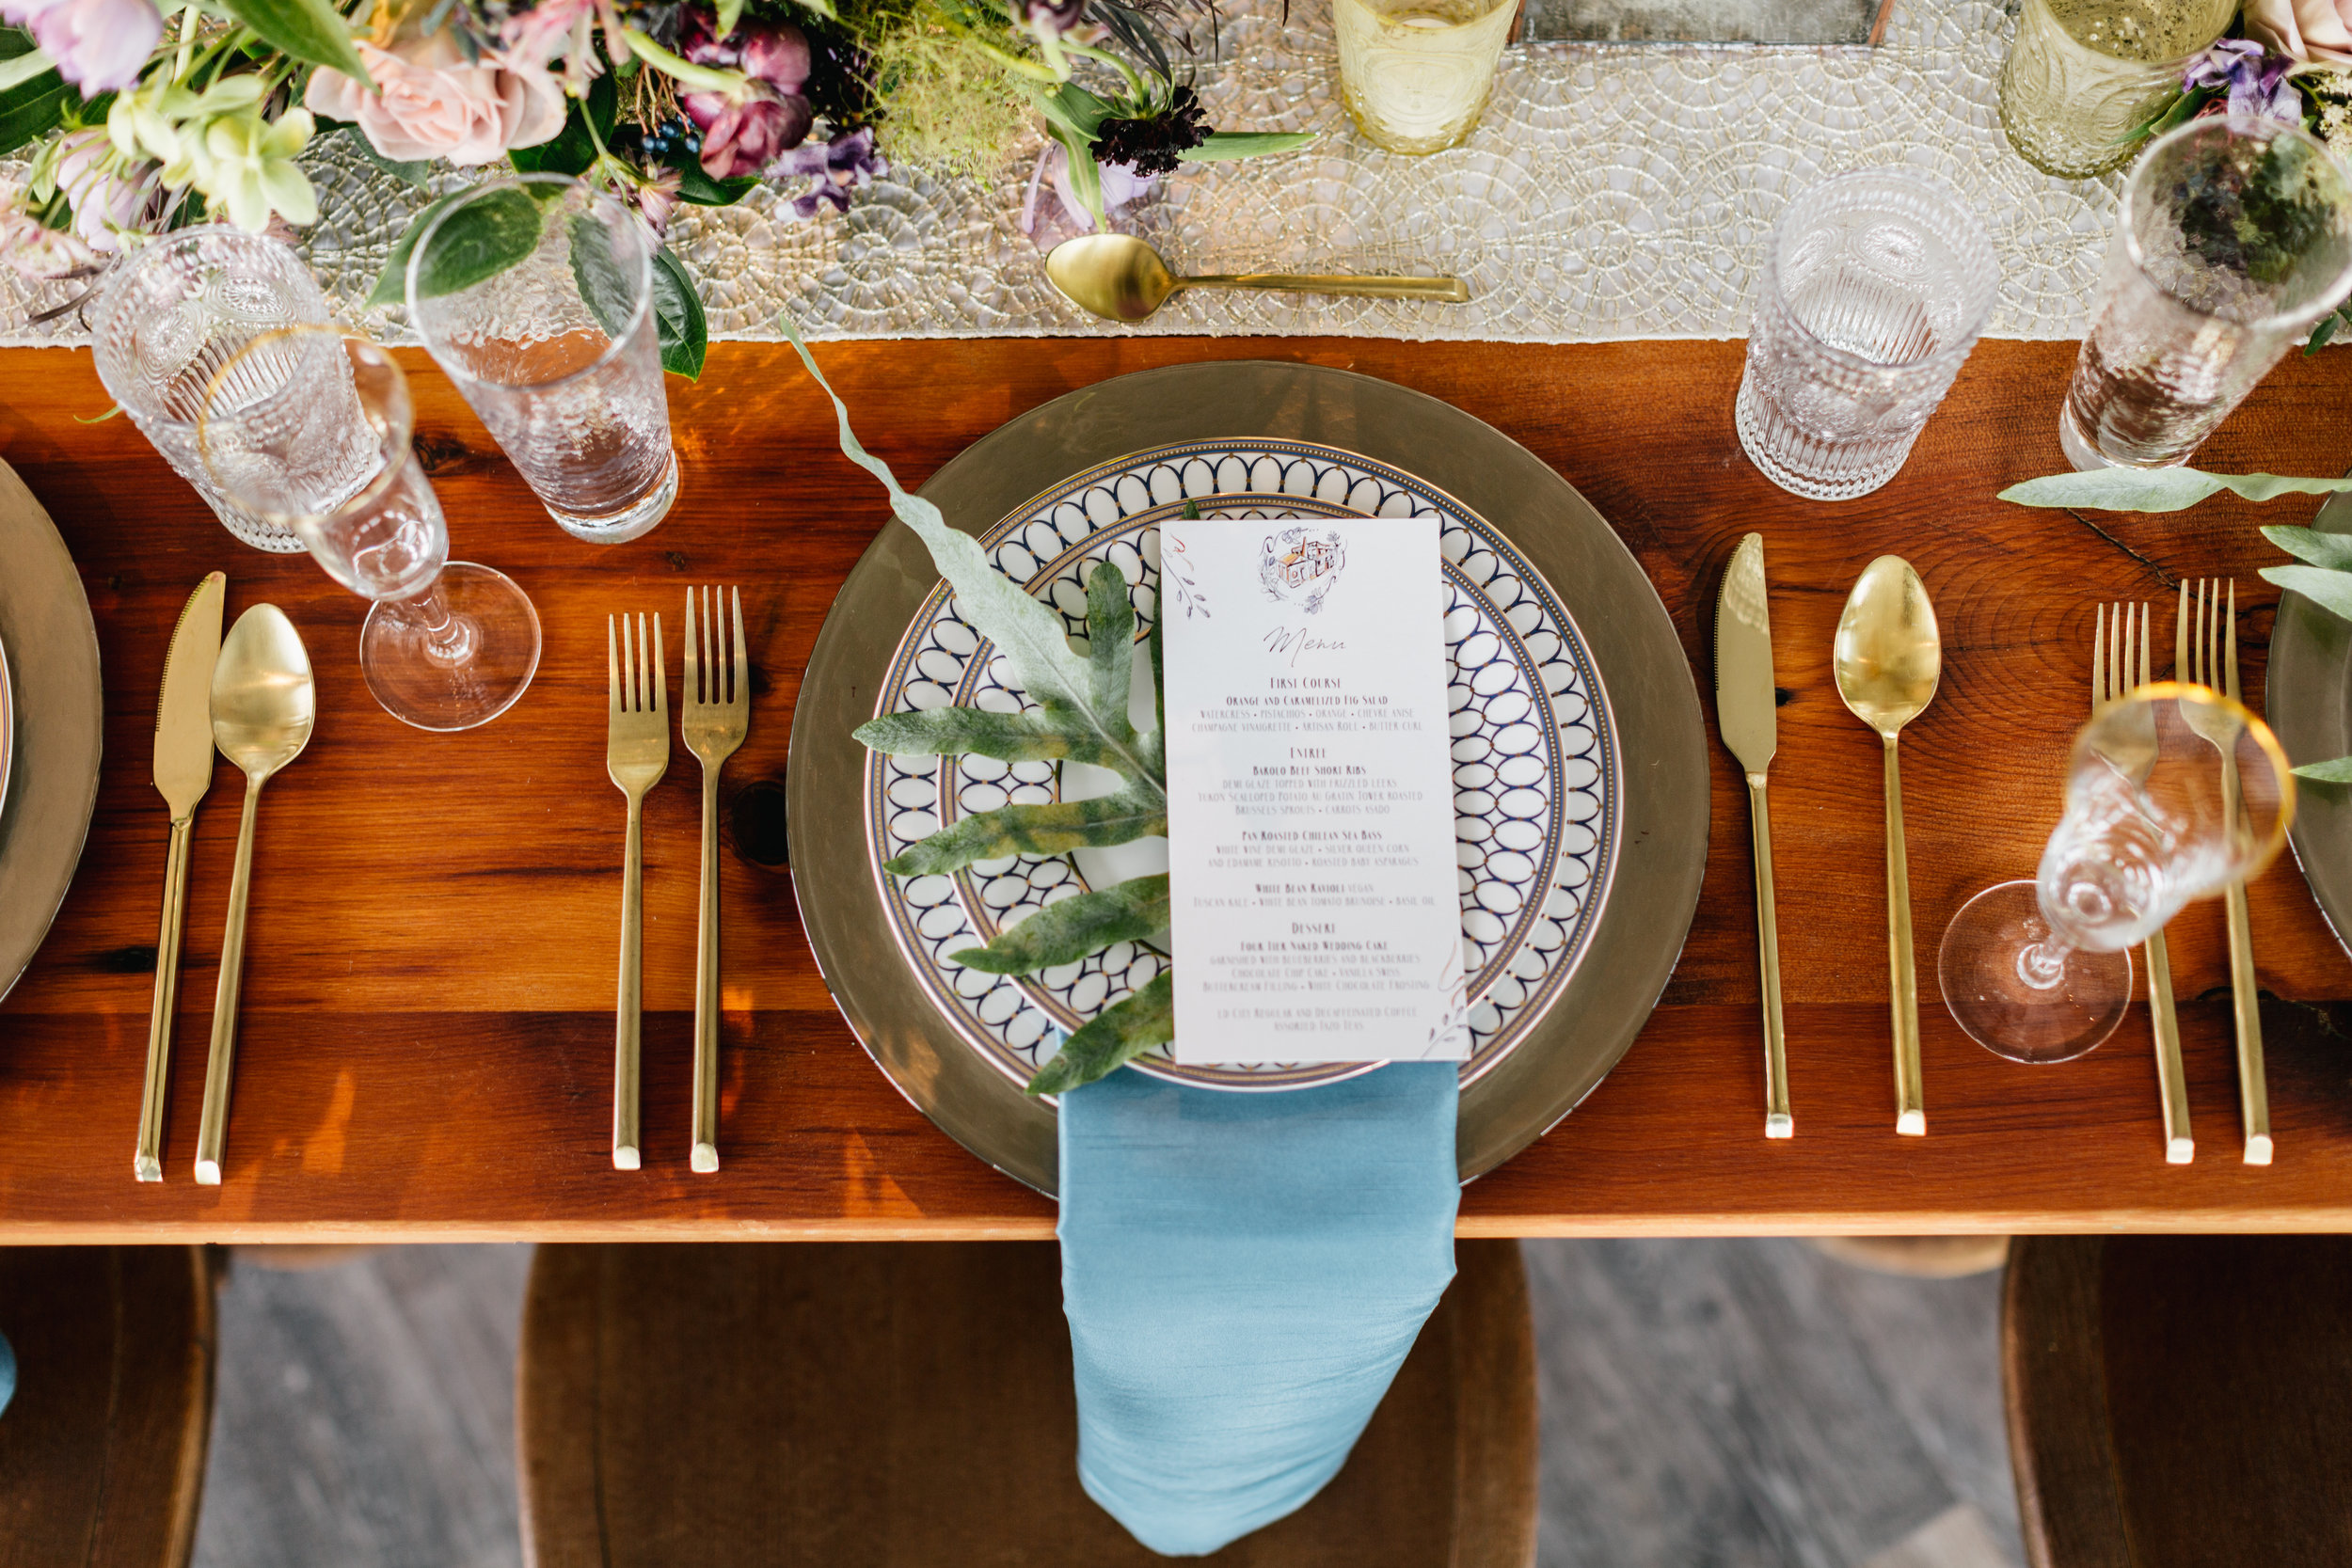 full service event design - we are a full service event design company providing custom florals and décor for weddings and special events. we thoughtfully design and craft each of our events while maintaining a fun, exciting experience for our clients throughout the process.